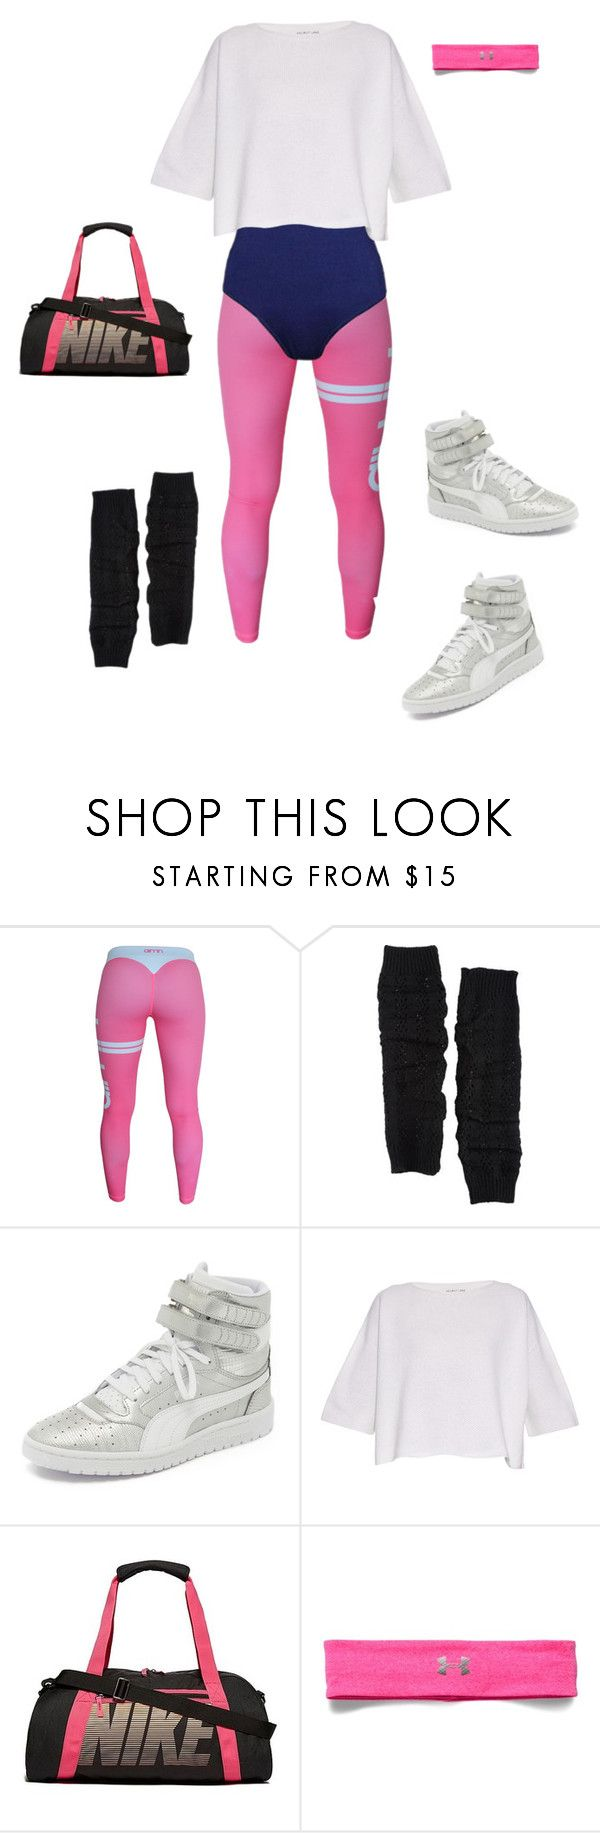 """80's Workout"" by ccoss on Polyvore featuring Capelli New York, Puma, Helmut Lang, NIKE, Under Armour, women's clothing, women's fashion, women, female and woman"